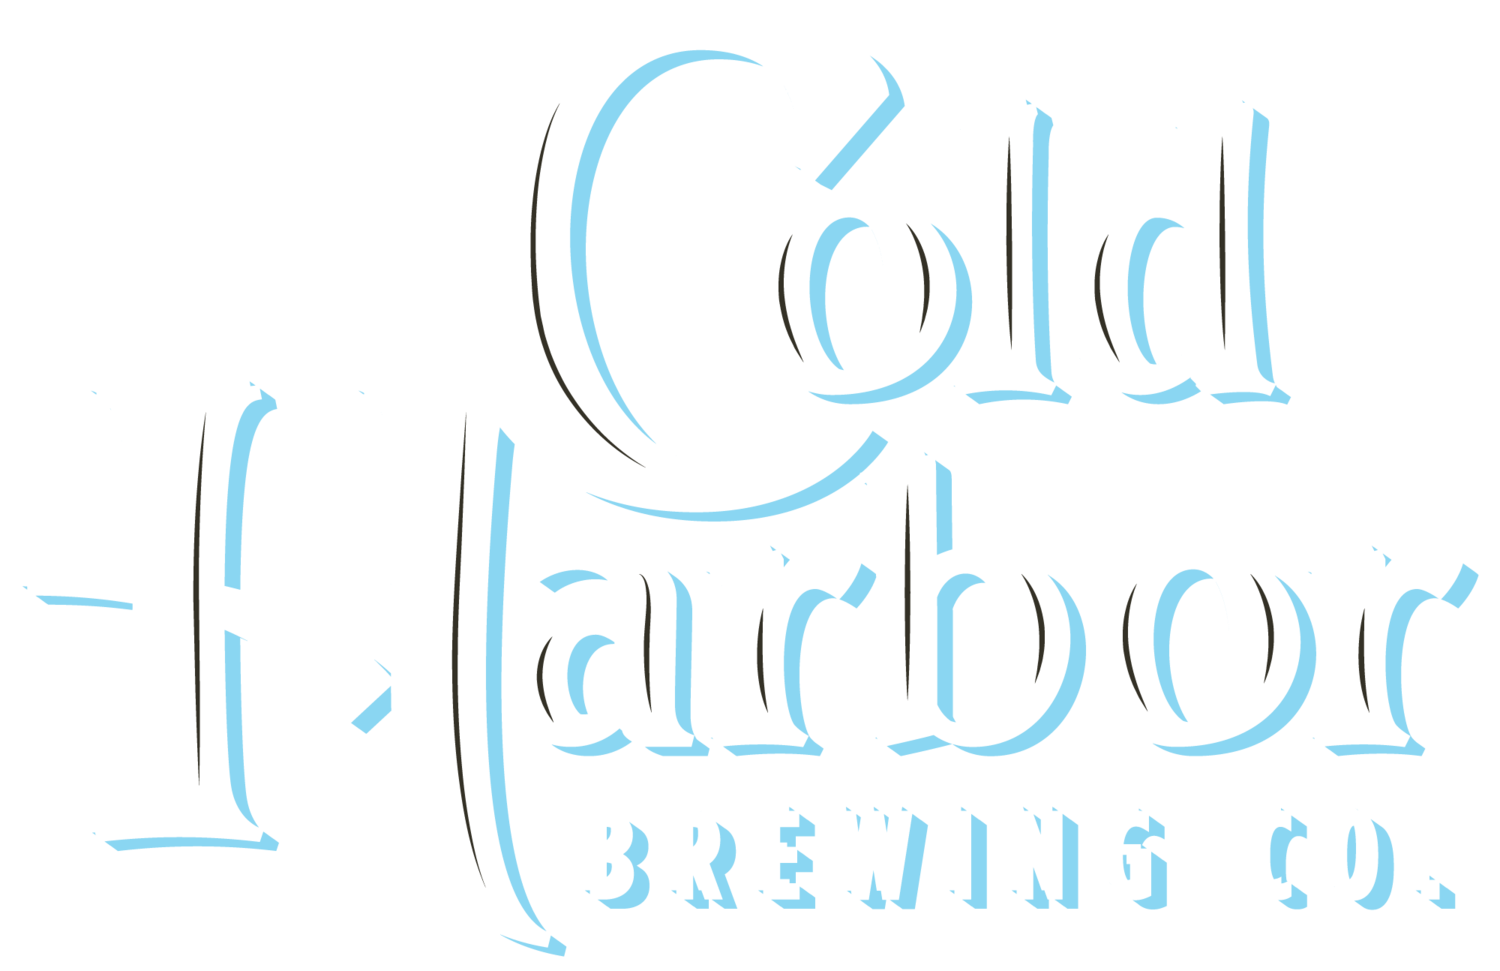 Cold Harbor Brewing Co.